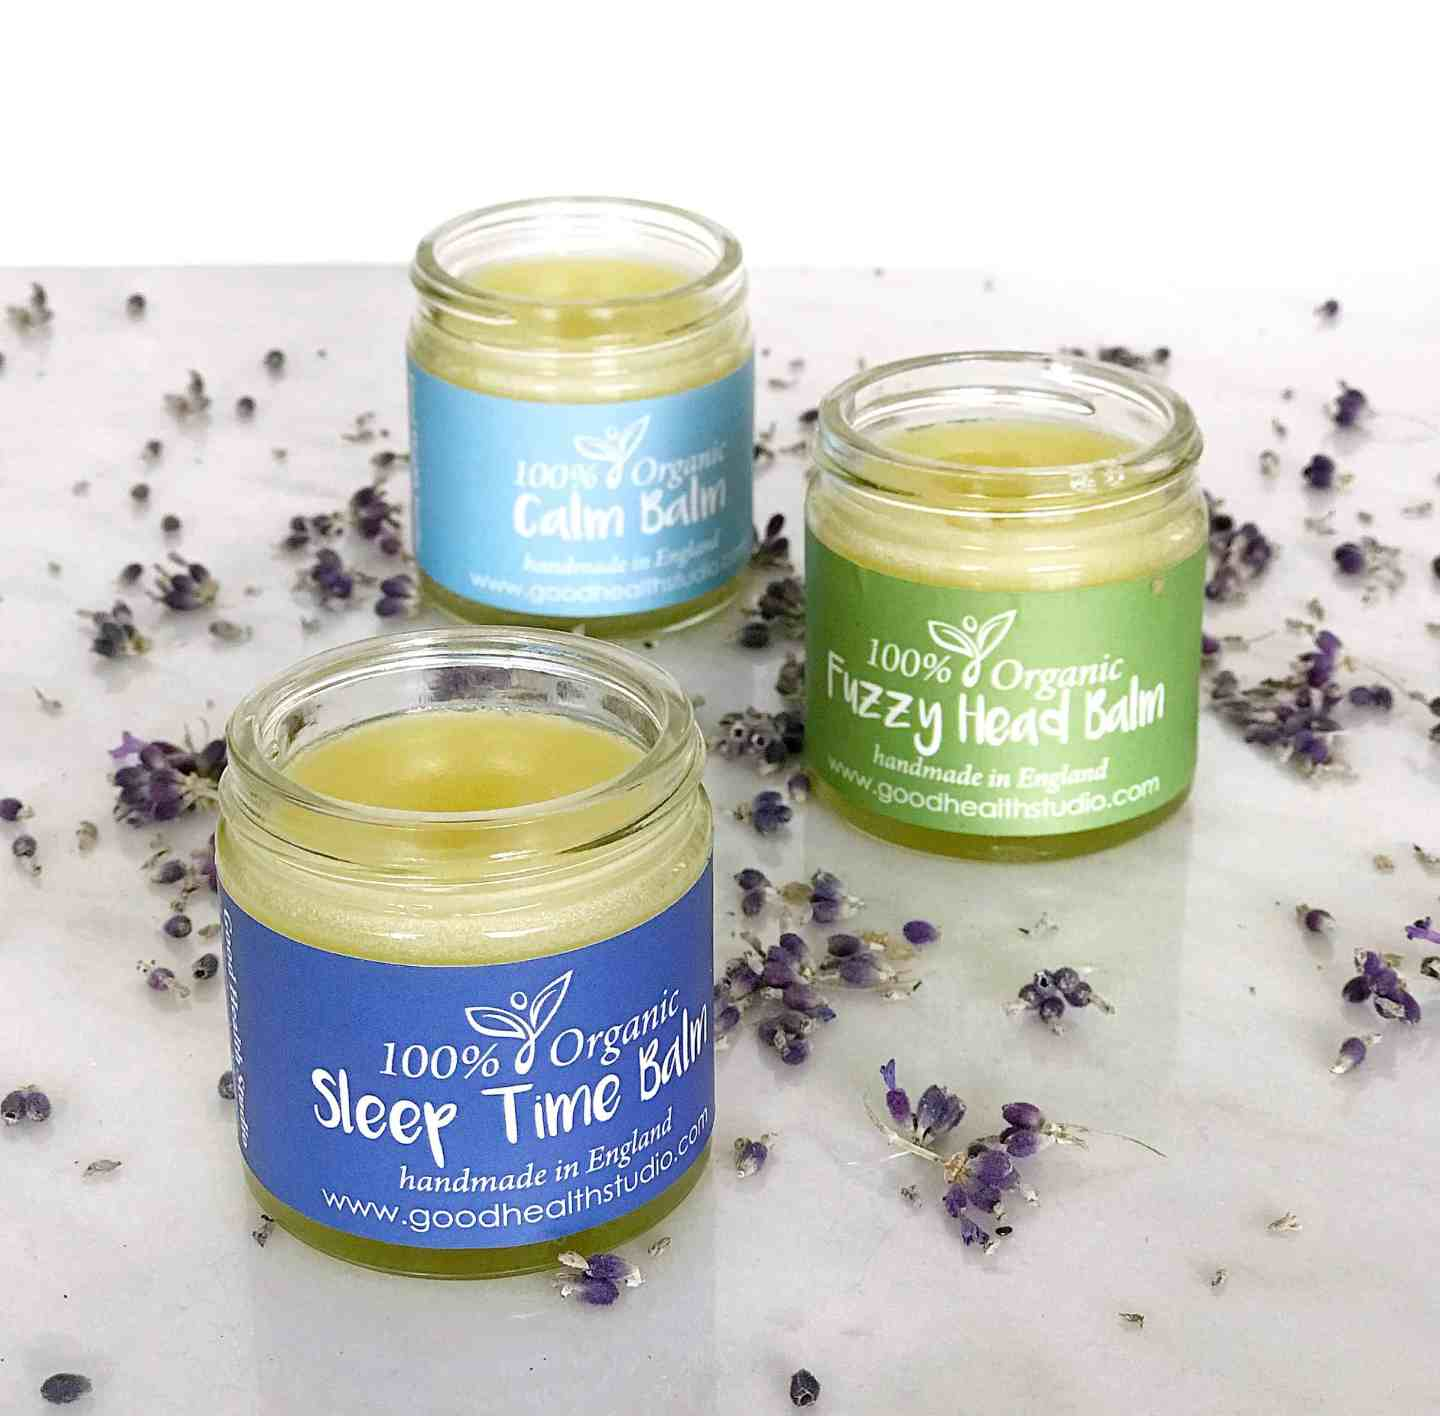 Looking after myself with Good Health Studio 100% organic aromatherapy wellness balms